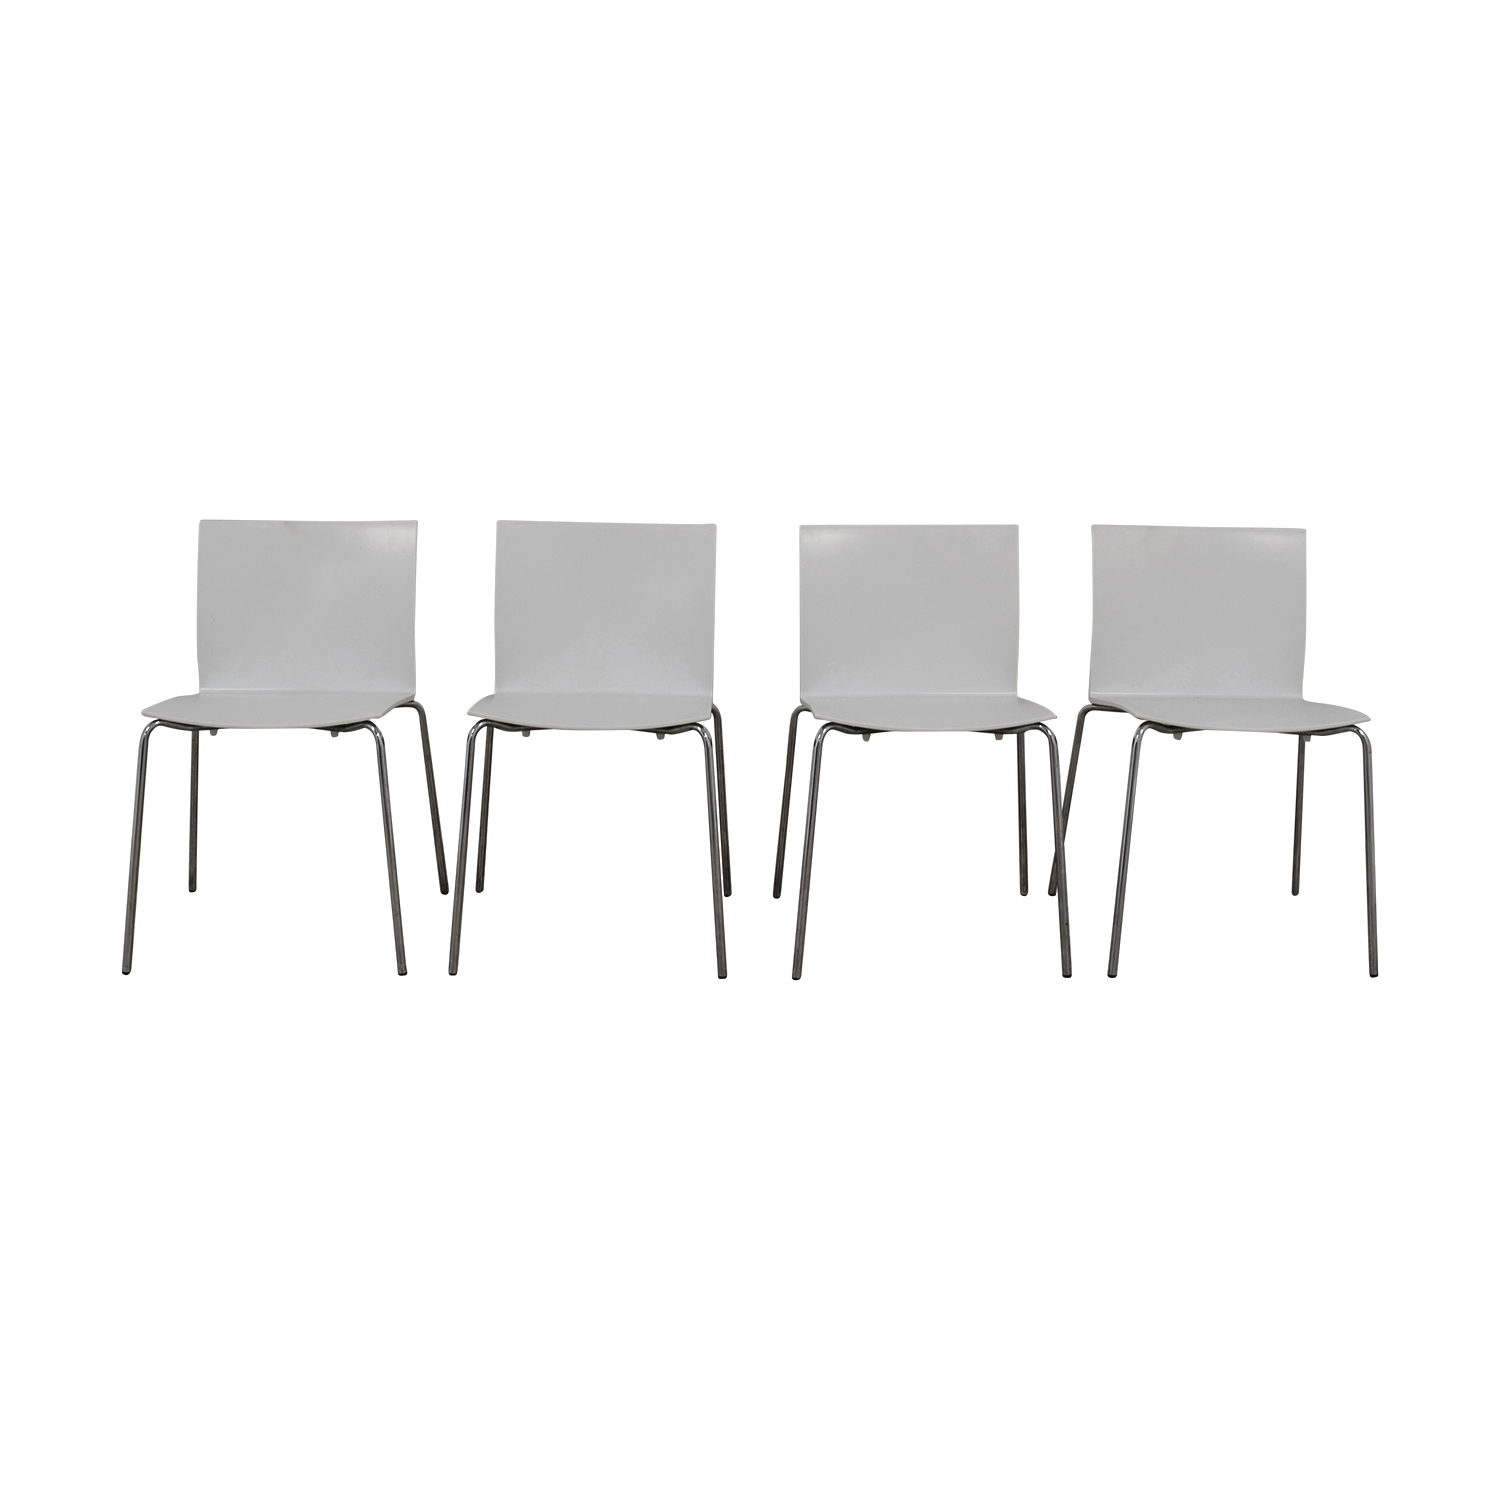 CB2 CB2 Slim White Chairs discount